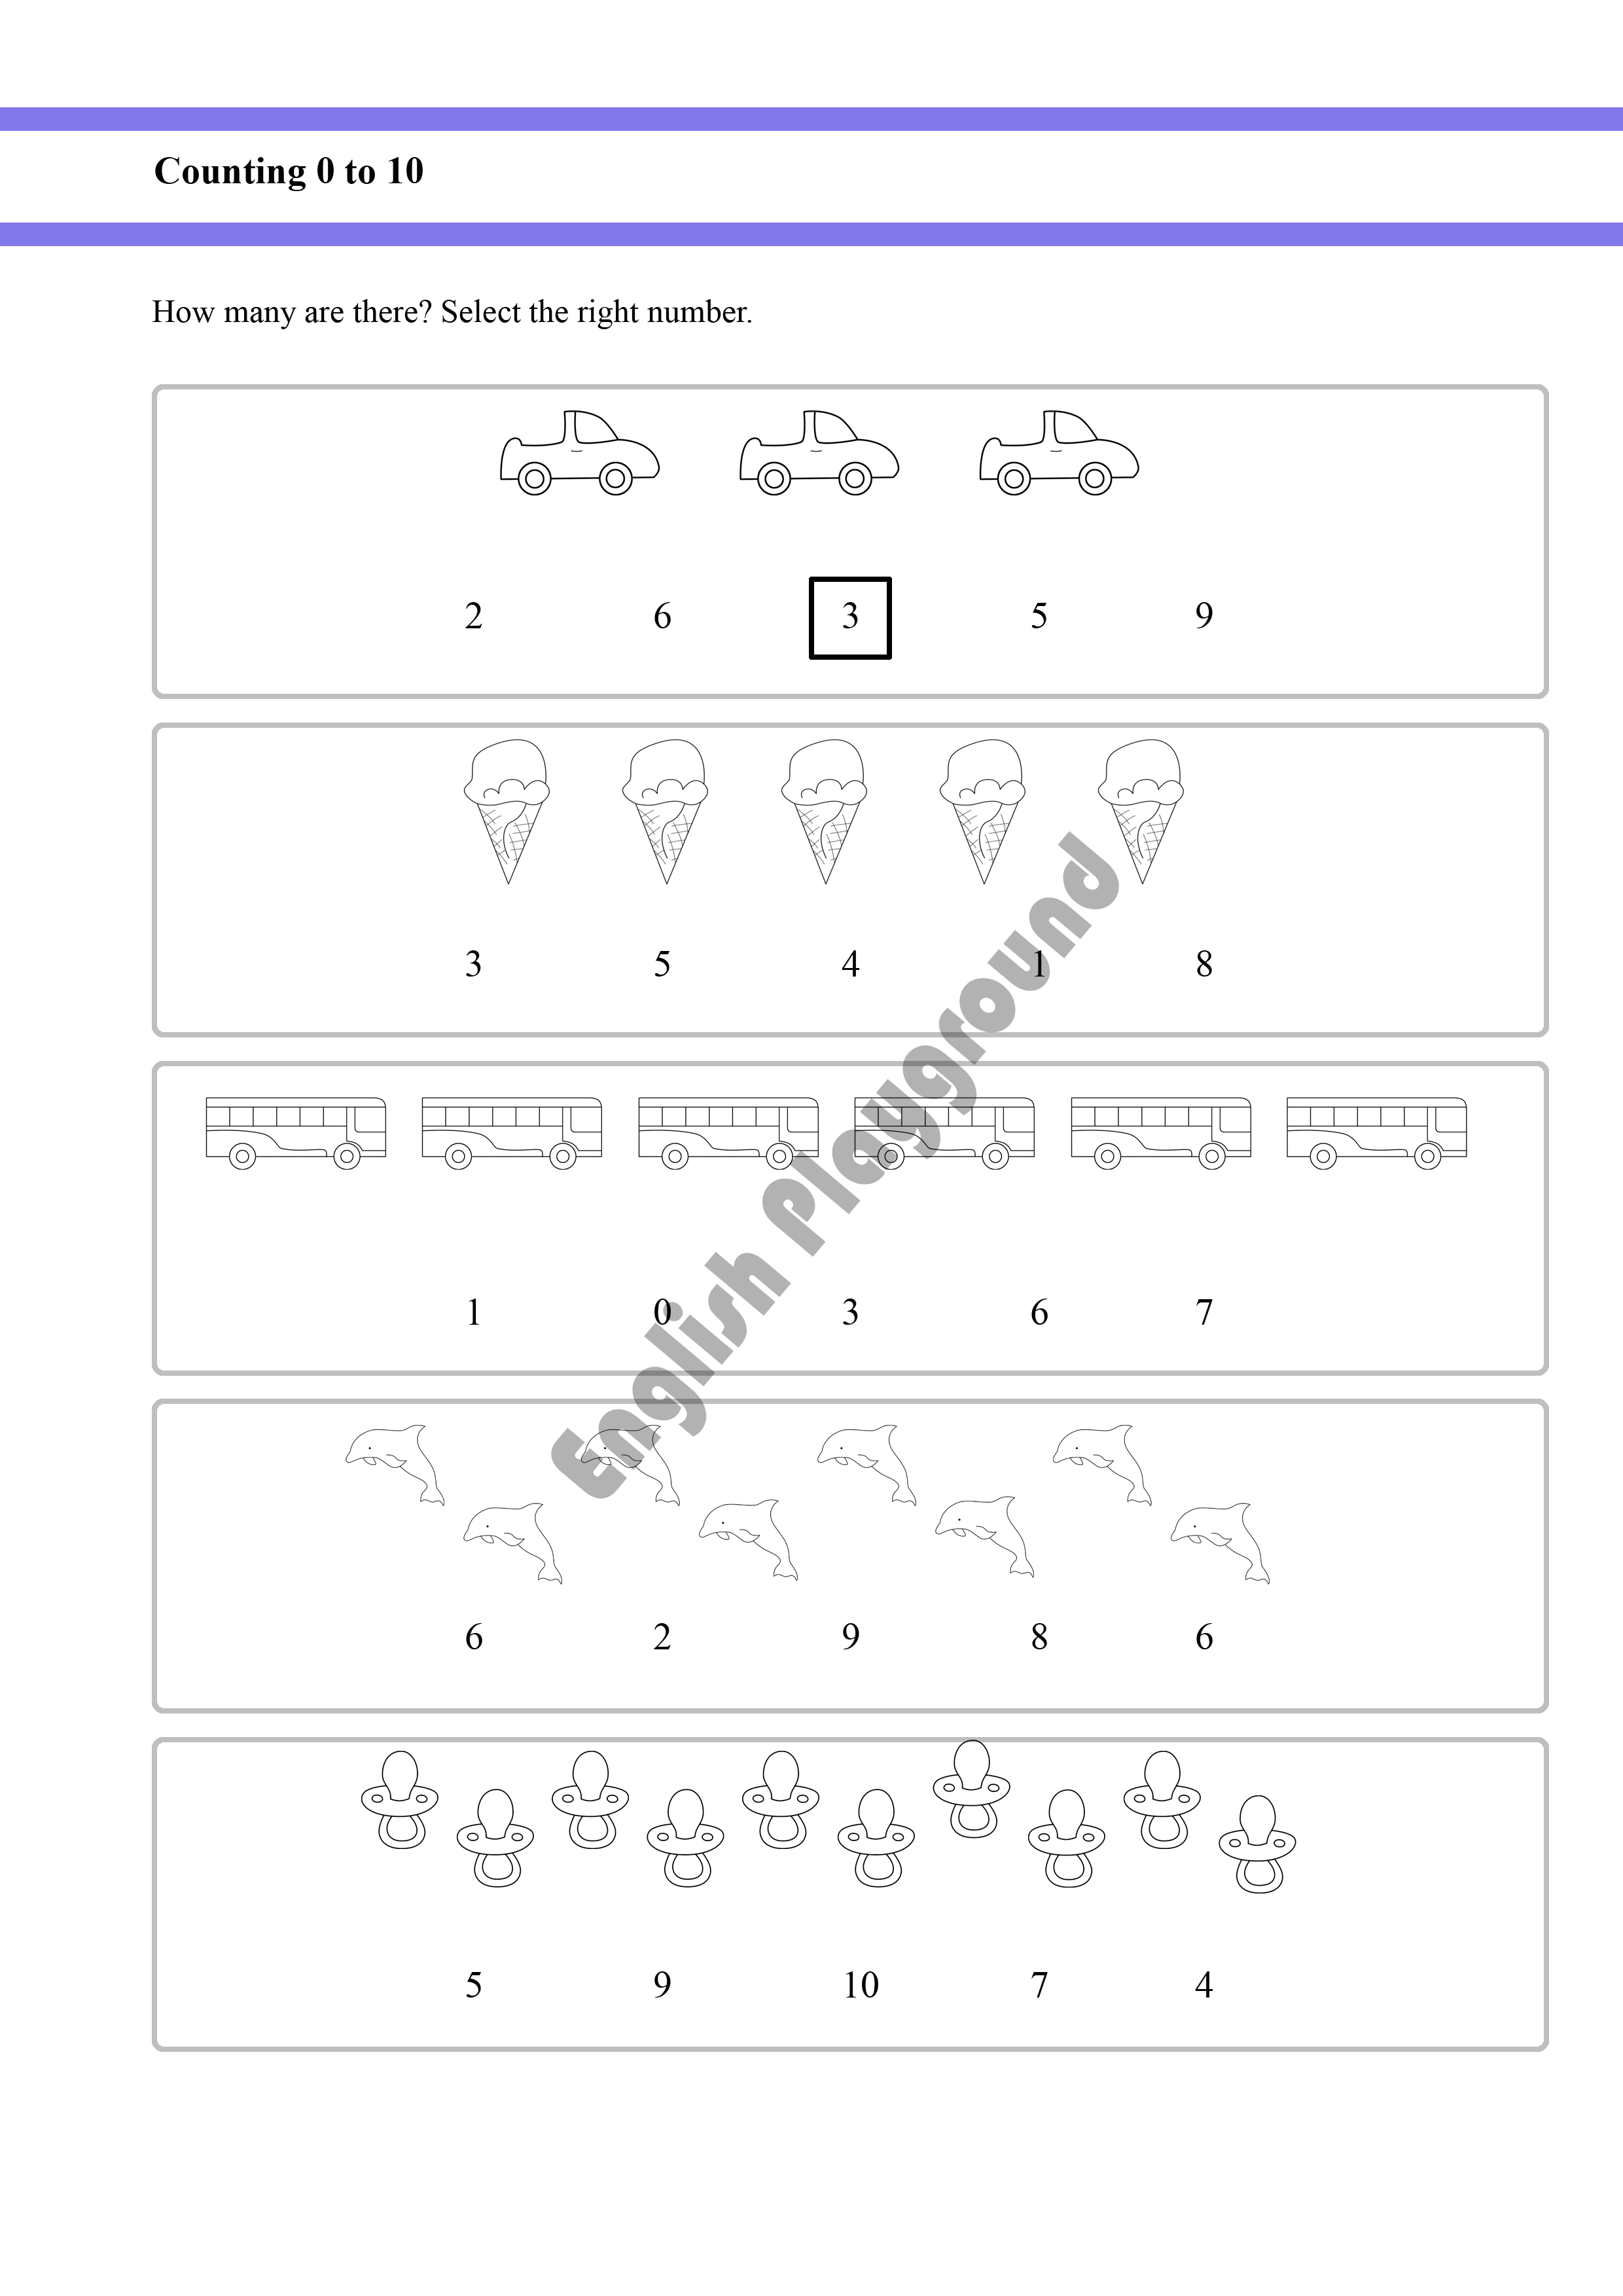 Counting Worksheet For Reception And Year 1